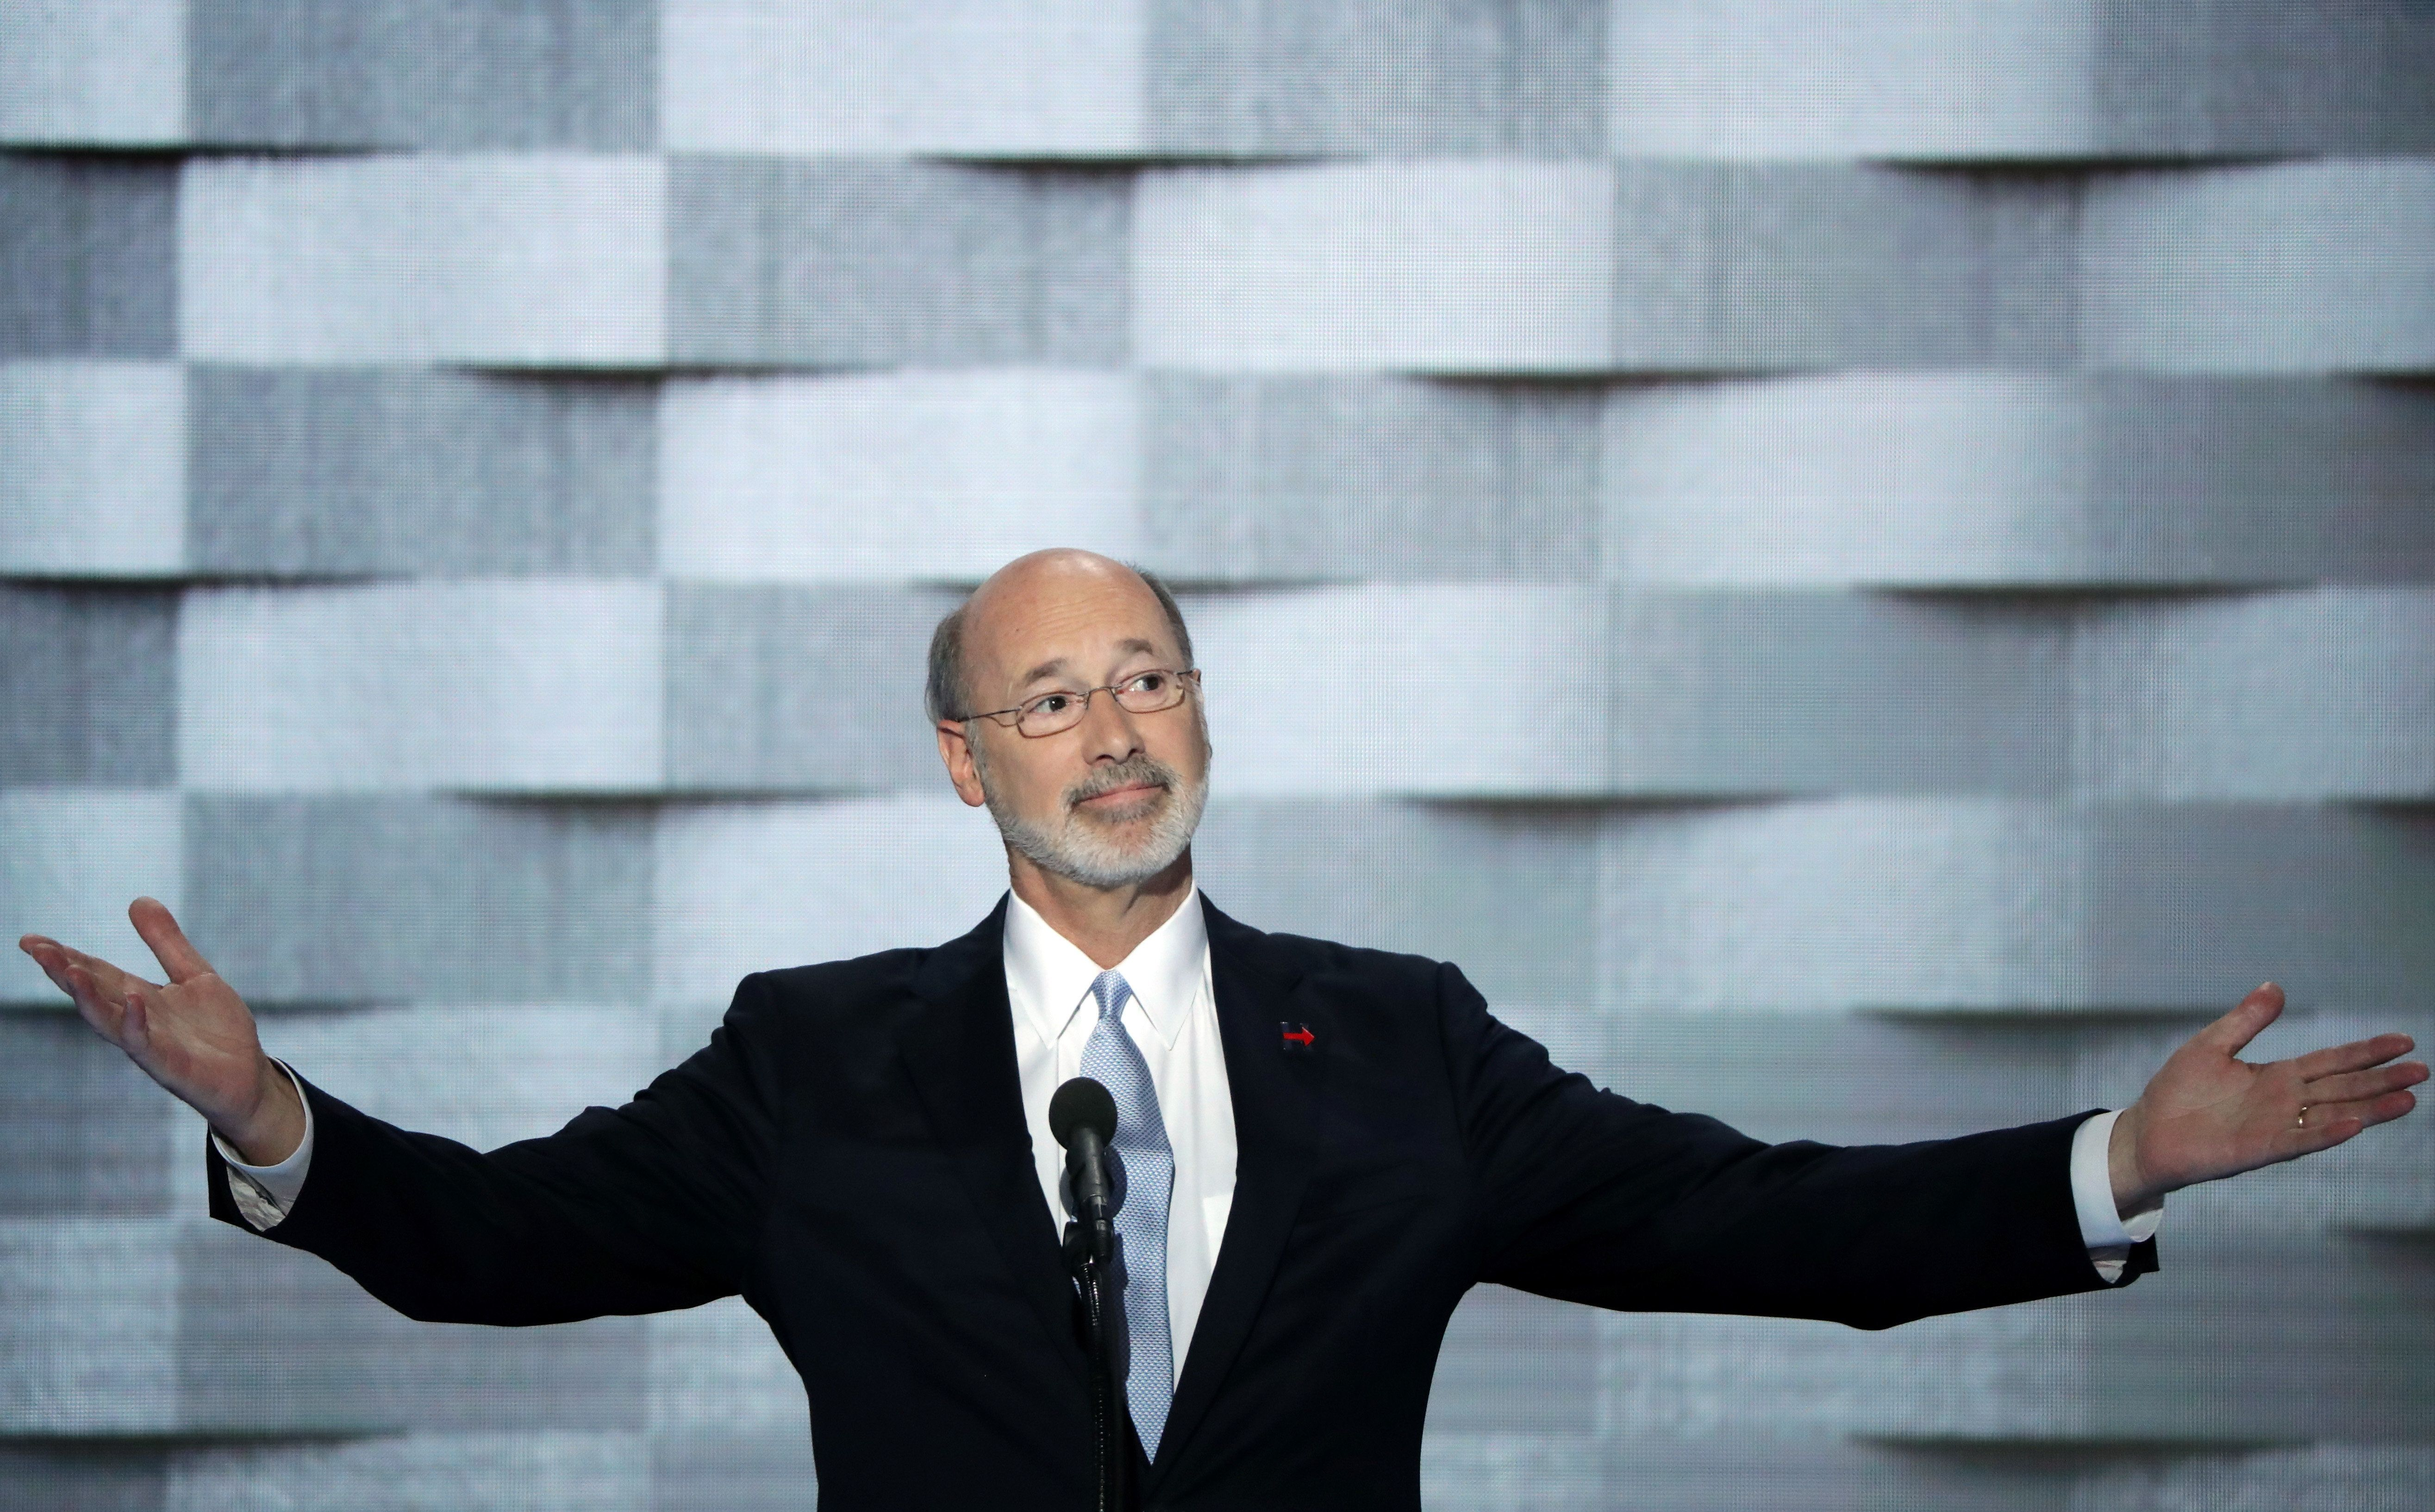 Pennsylvania Governor: Women Can 'Make Their Own Health Care Decisions'